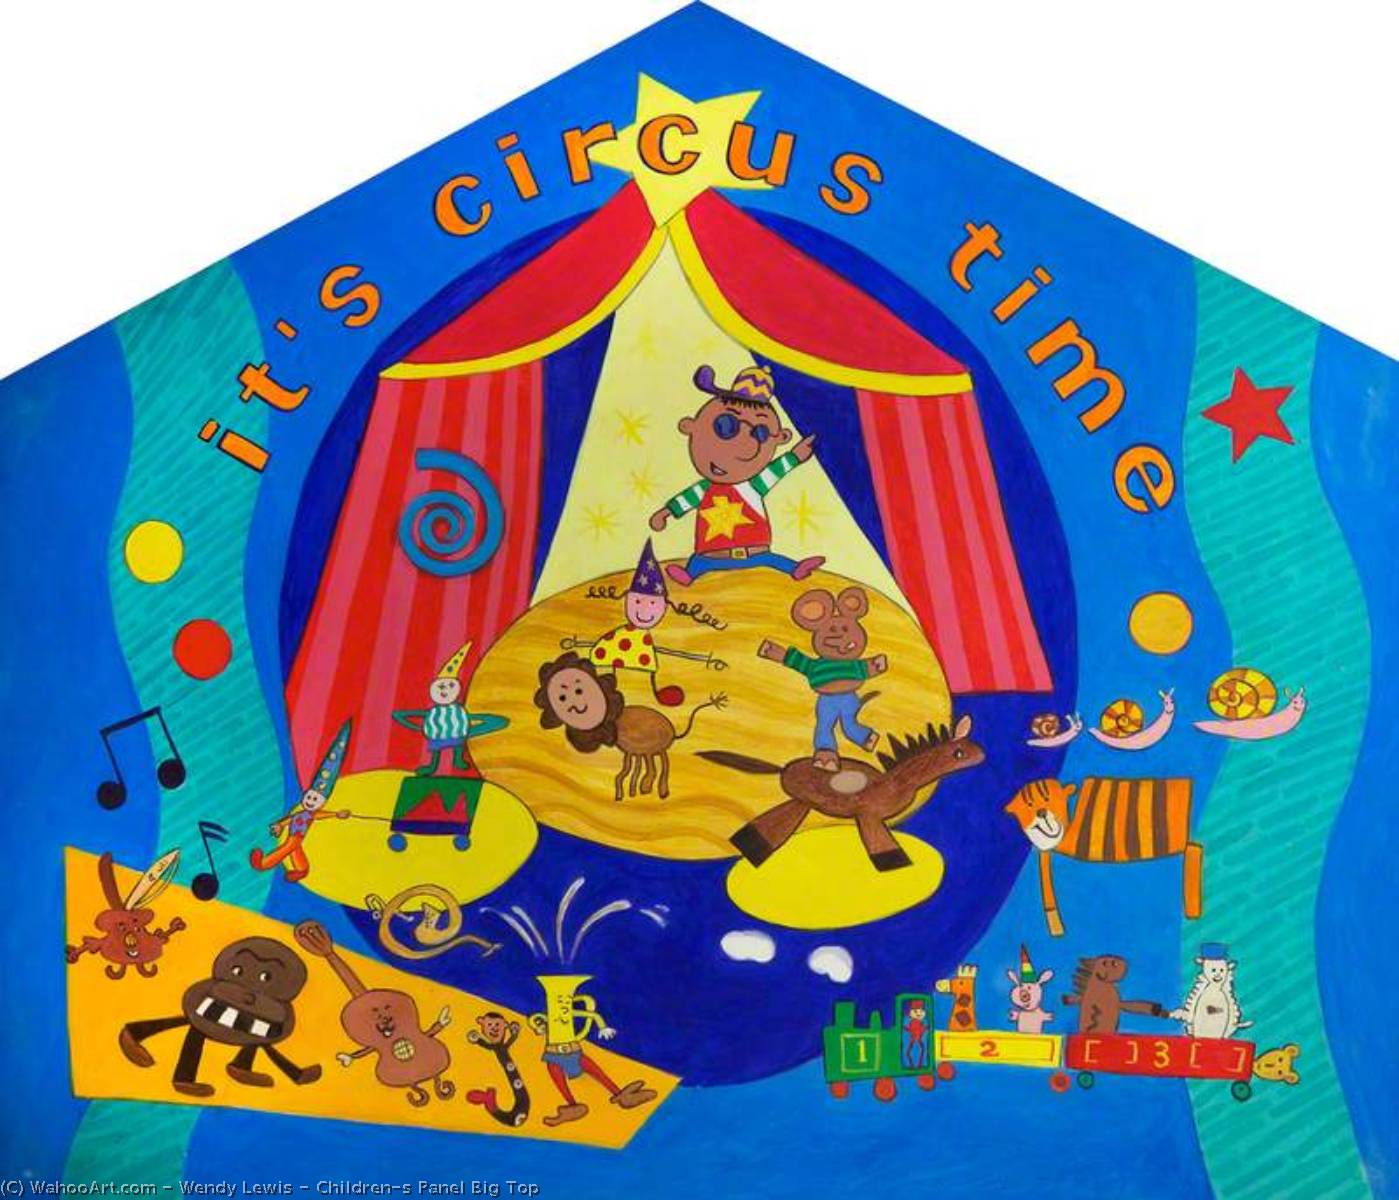 Order Paintings Reproductions | Children`s Panel Big Top, 2002 by Wendy Lewis | WahooArt.com